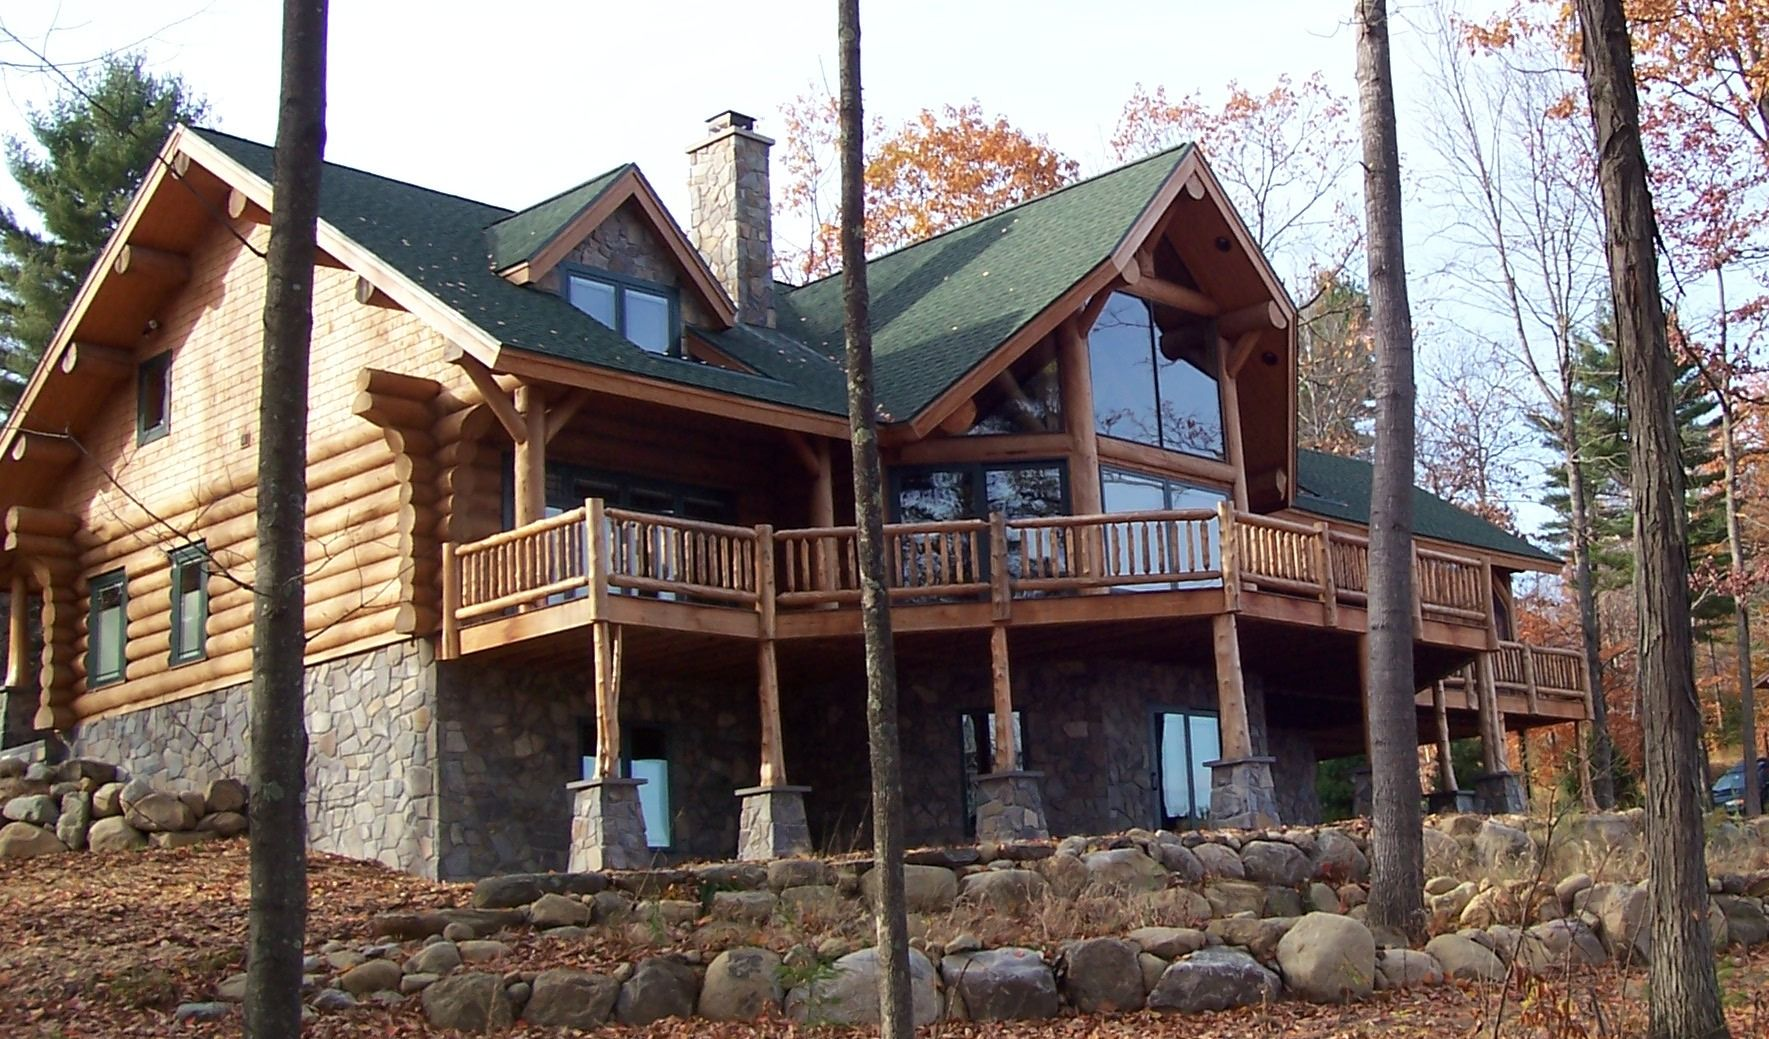 Adirondack Homes By Woodhouse Woodhouse Timber Frame Company Floor Plans Timber Frame Frame Company